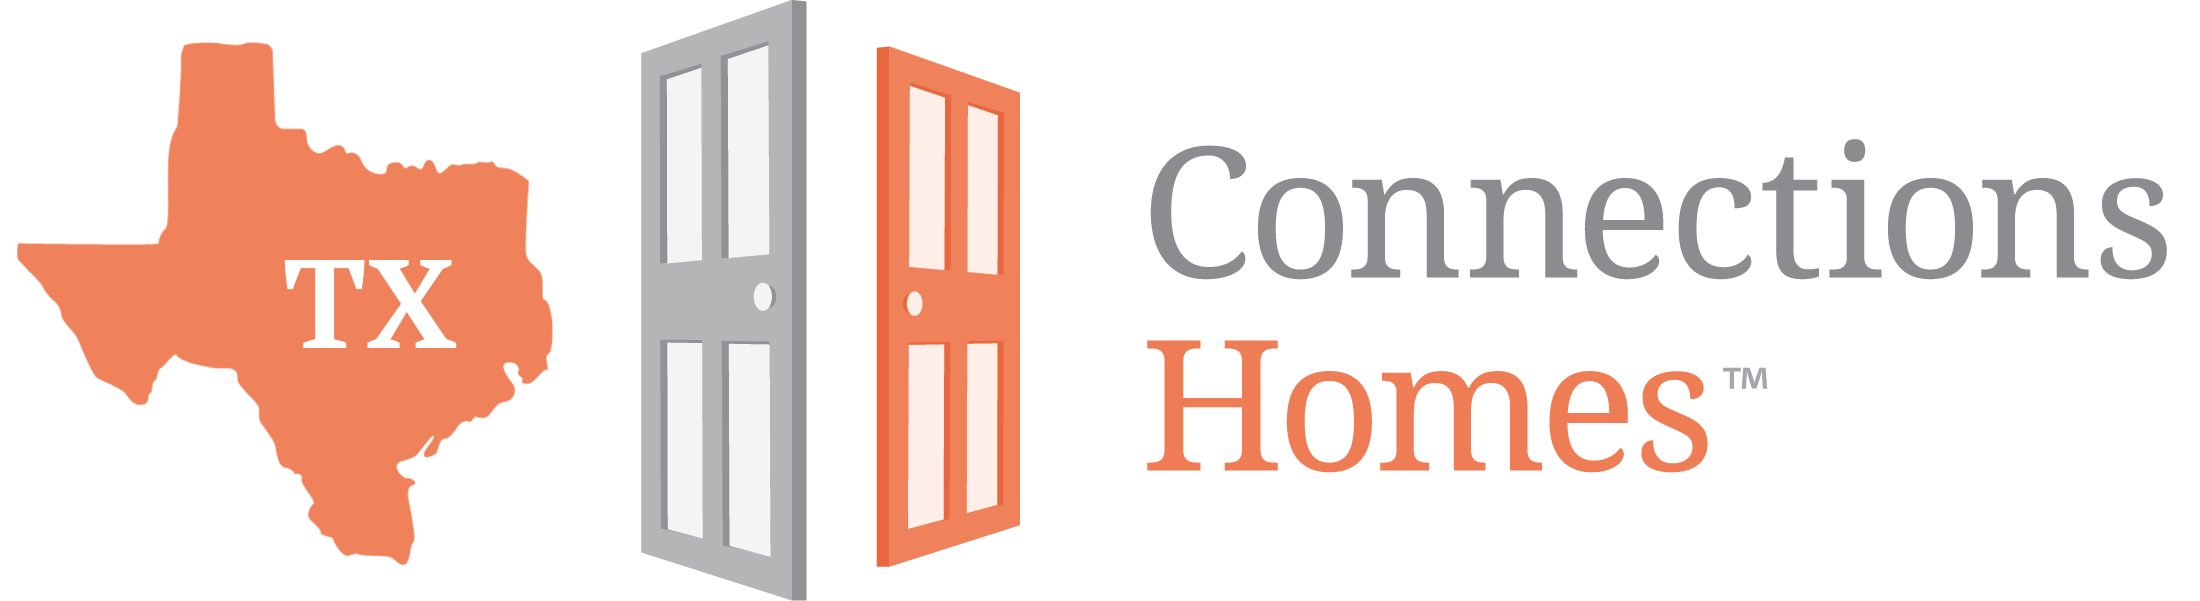 Connections Homes Texas